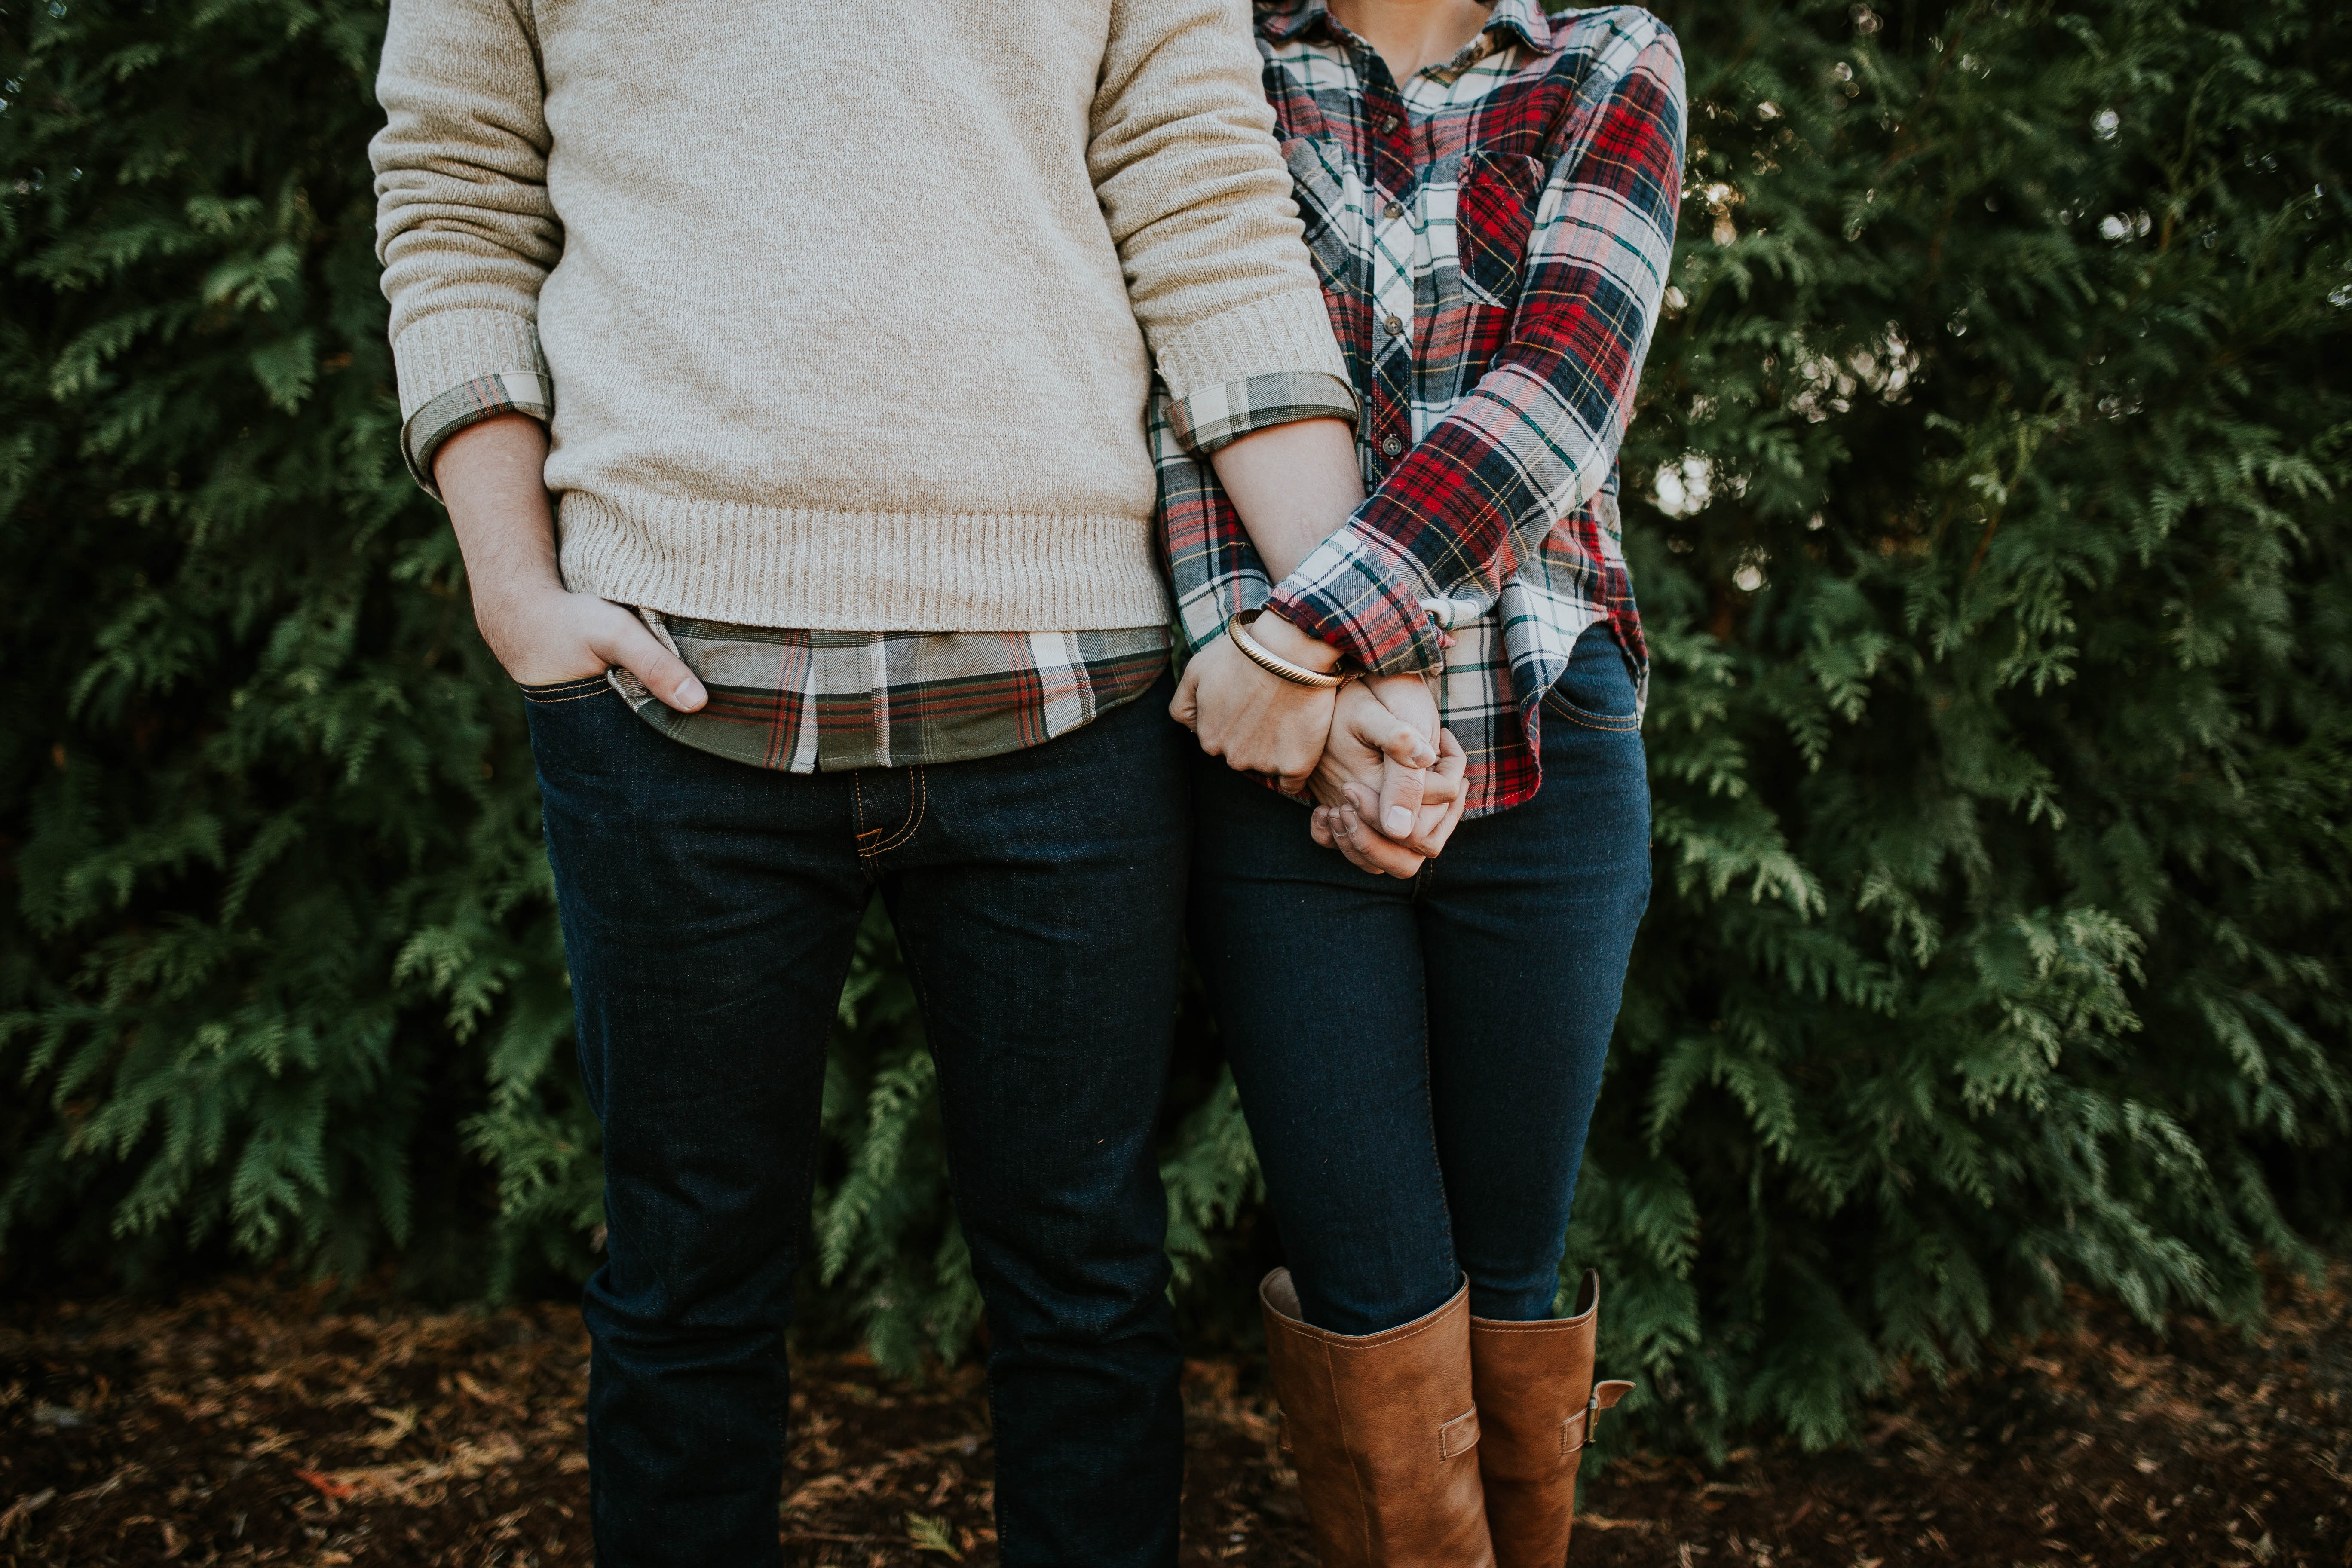 Couple in plaid, jeans, and sweater holding hands at Botanical Garden of the Ozarks